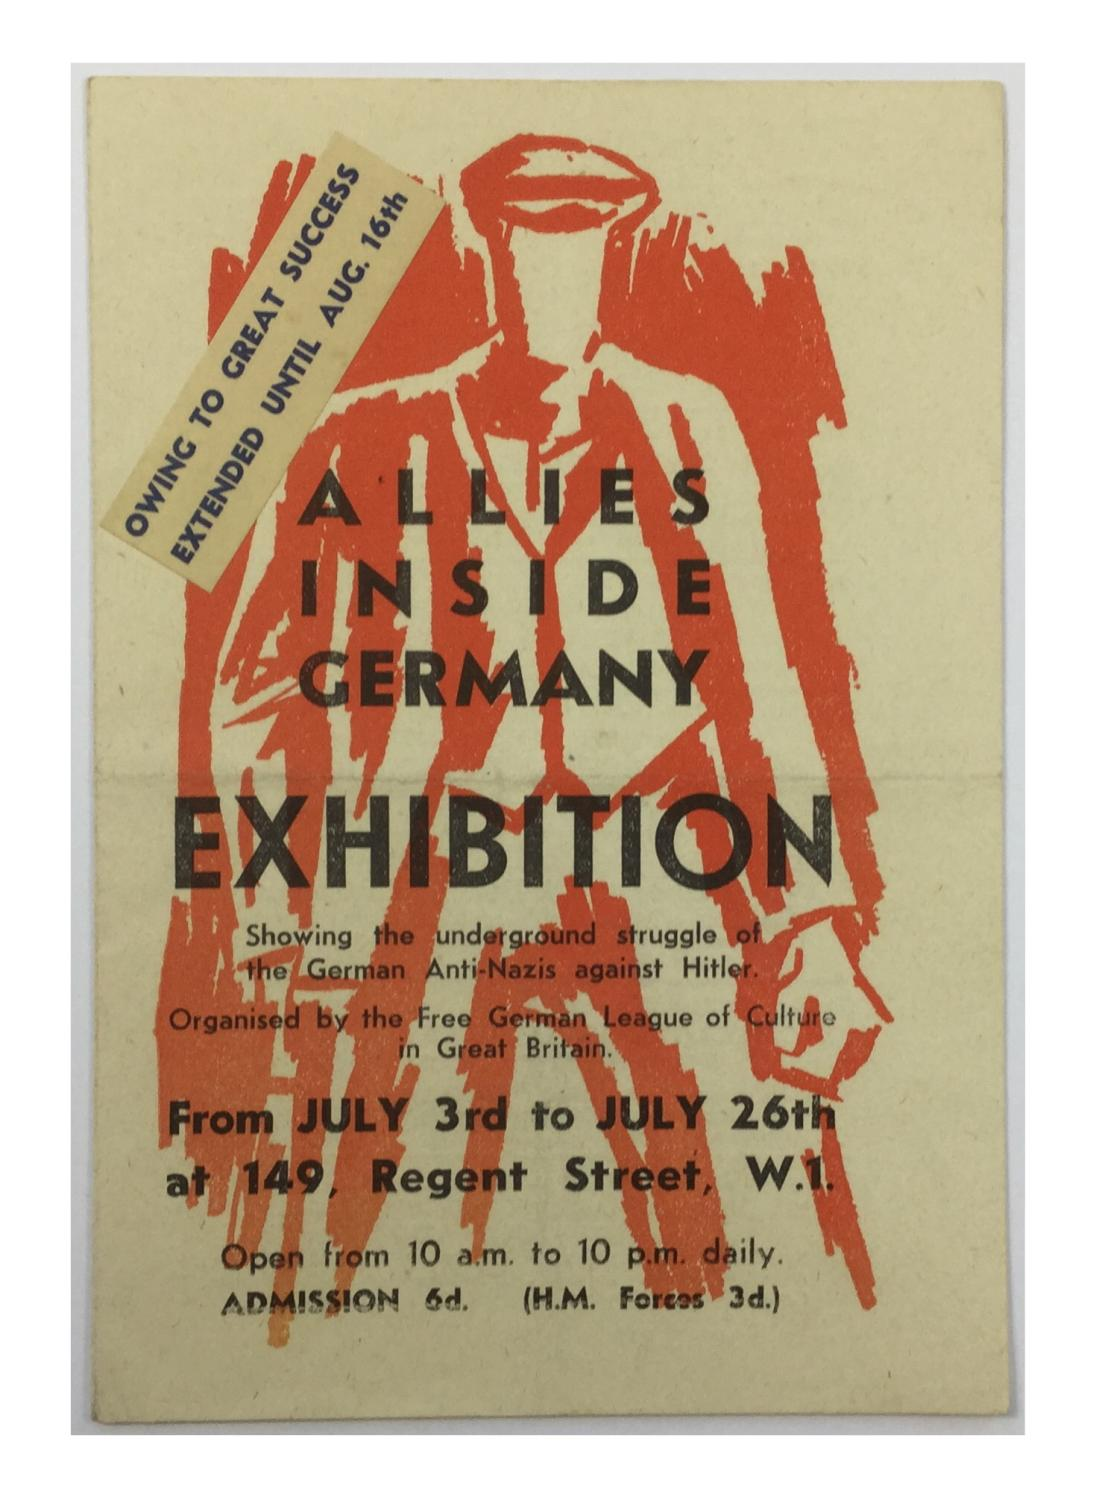 Allies inside Germany. Exhibition. Showing the underground struggle of the German Anti-Nazis against Hitler. Organised by the Free German League of Culture in Great Britain. From July 3rd to July 26th at 149, Regent Street, W. 1. Open from 10 a.m. to 10 p